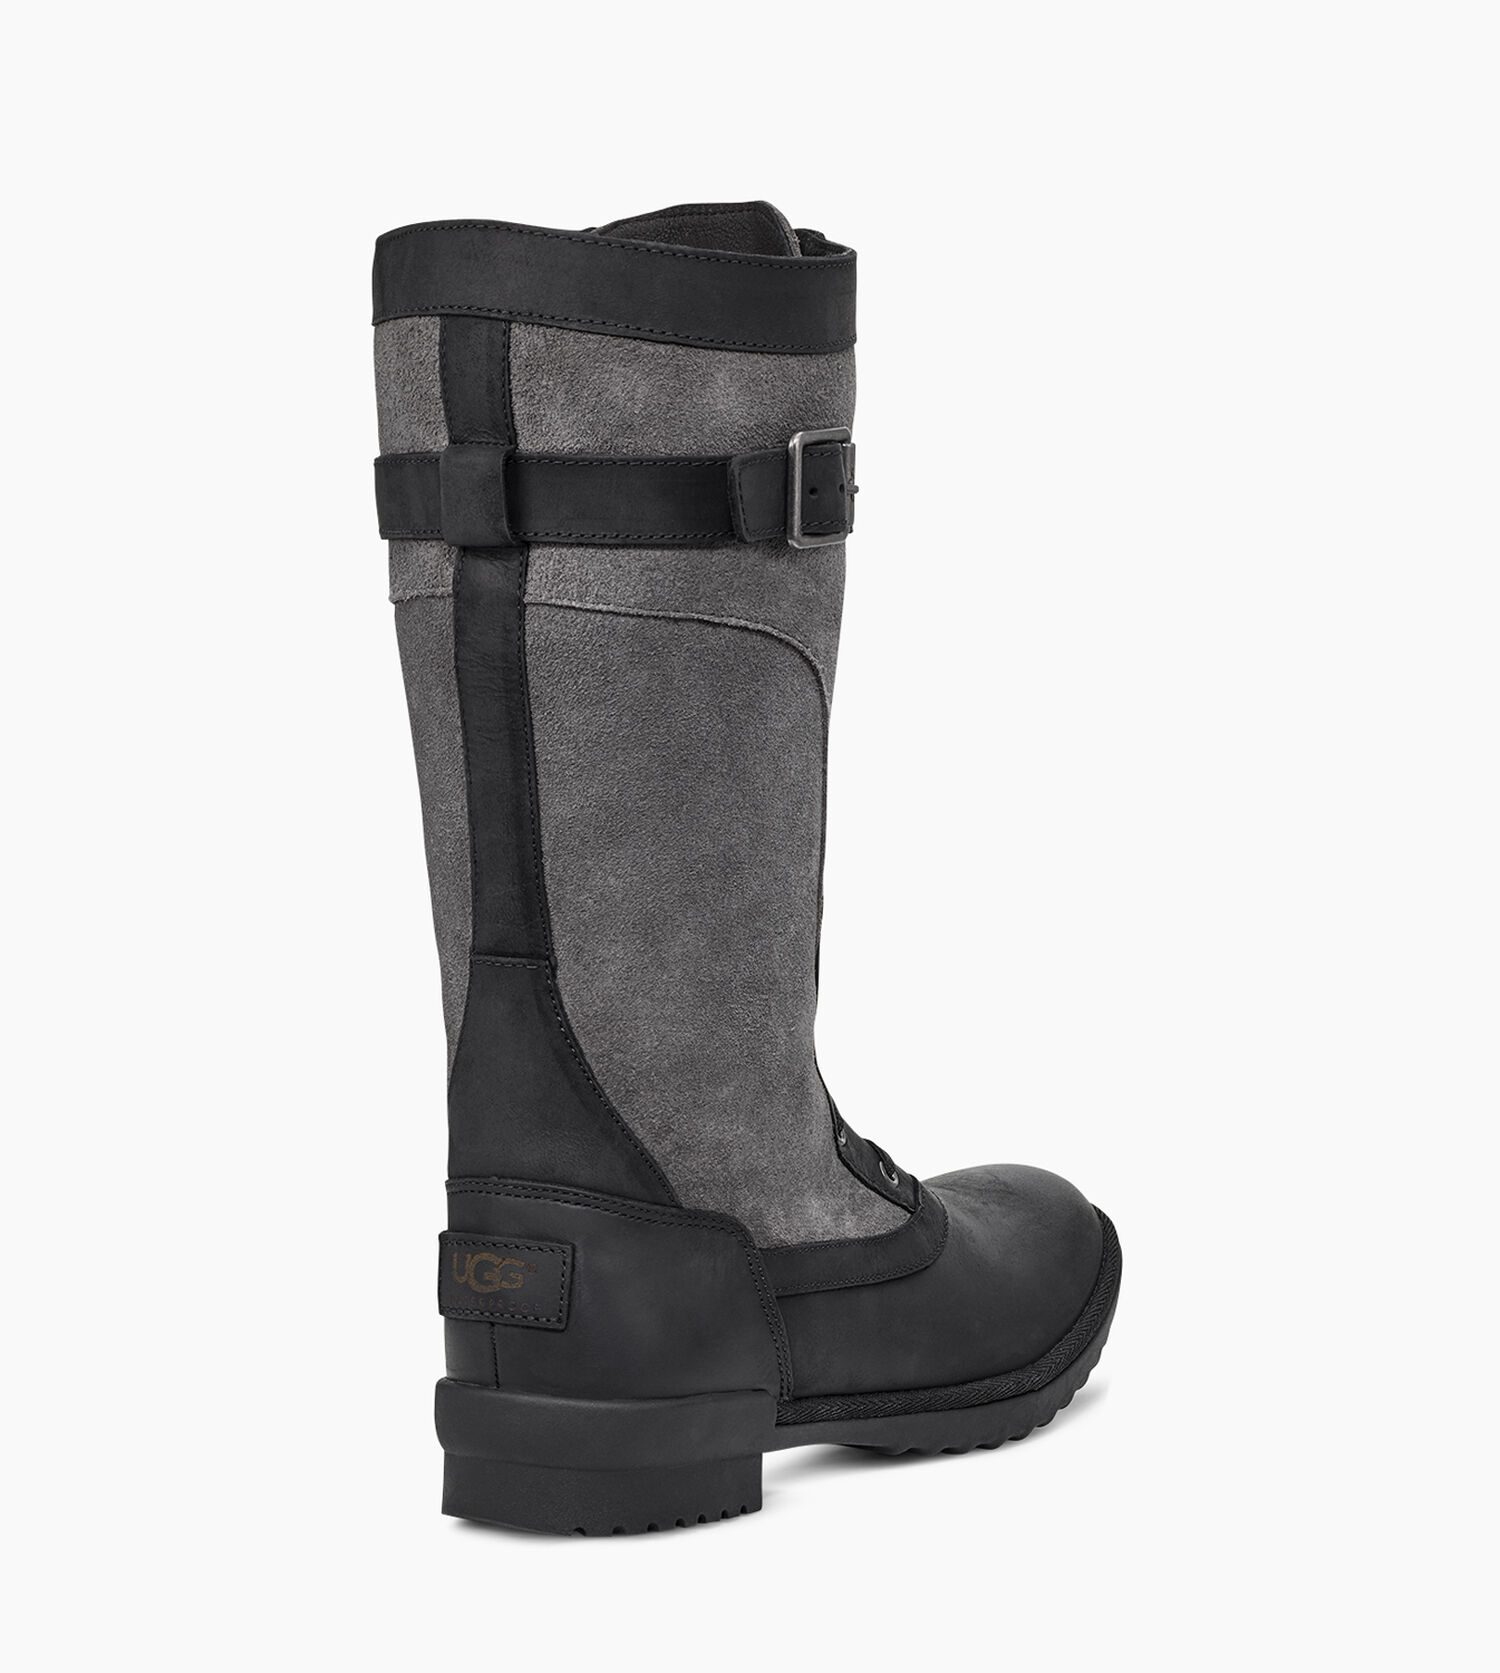 996ae20fbb1 Women's Brystl Tall Boot   UGG® Official